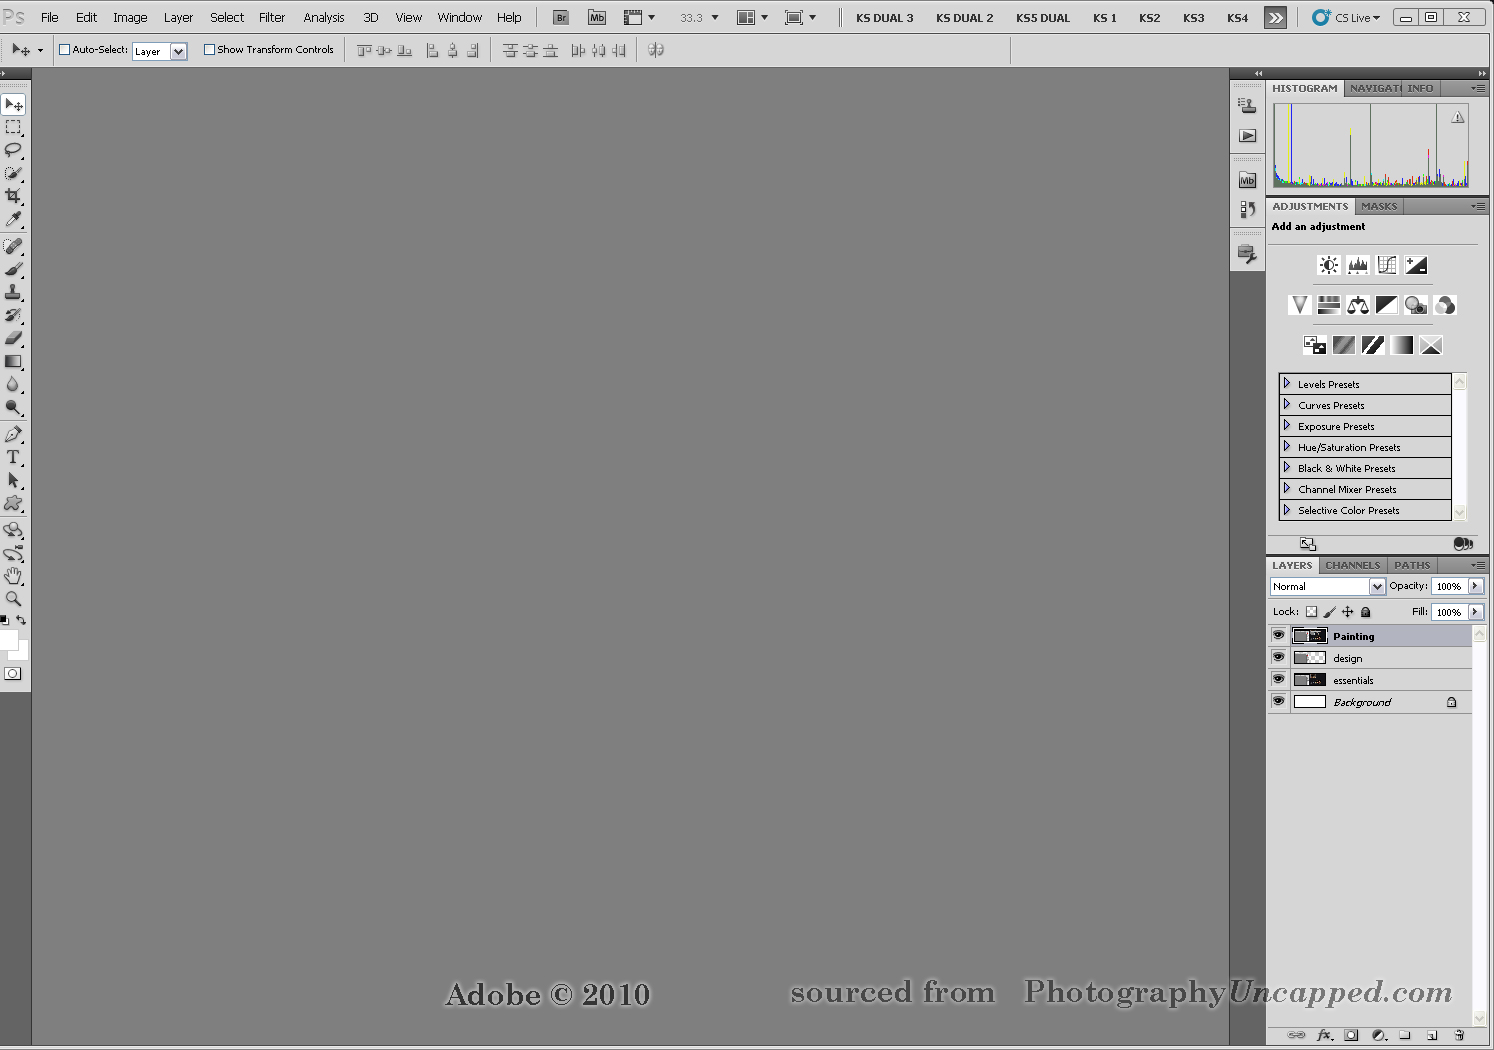 Adobe photoshop cs5 extended with good crack free download full version